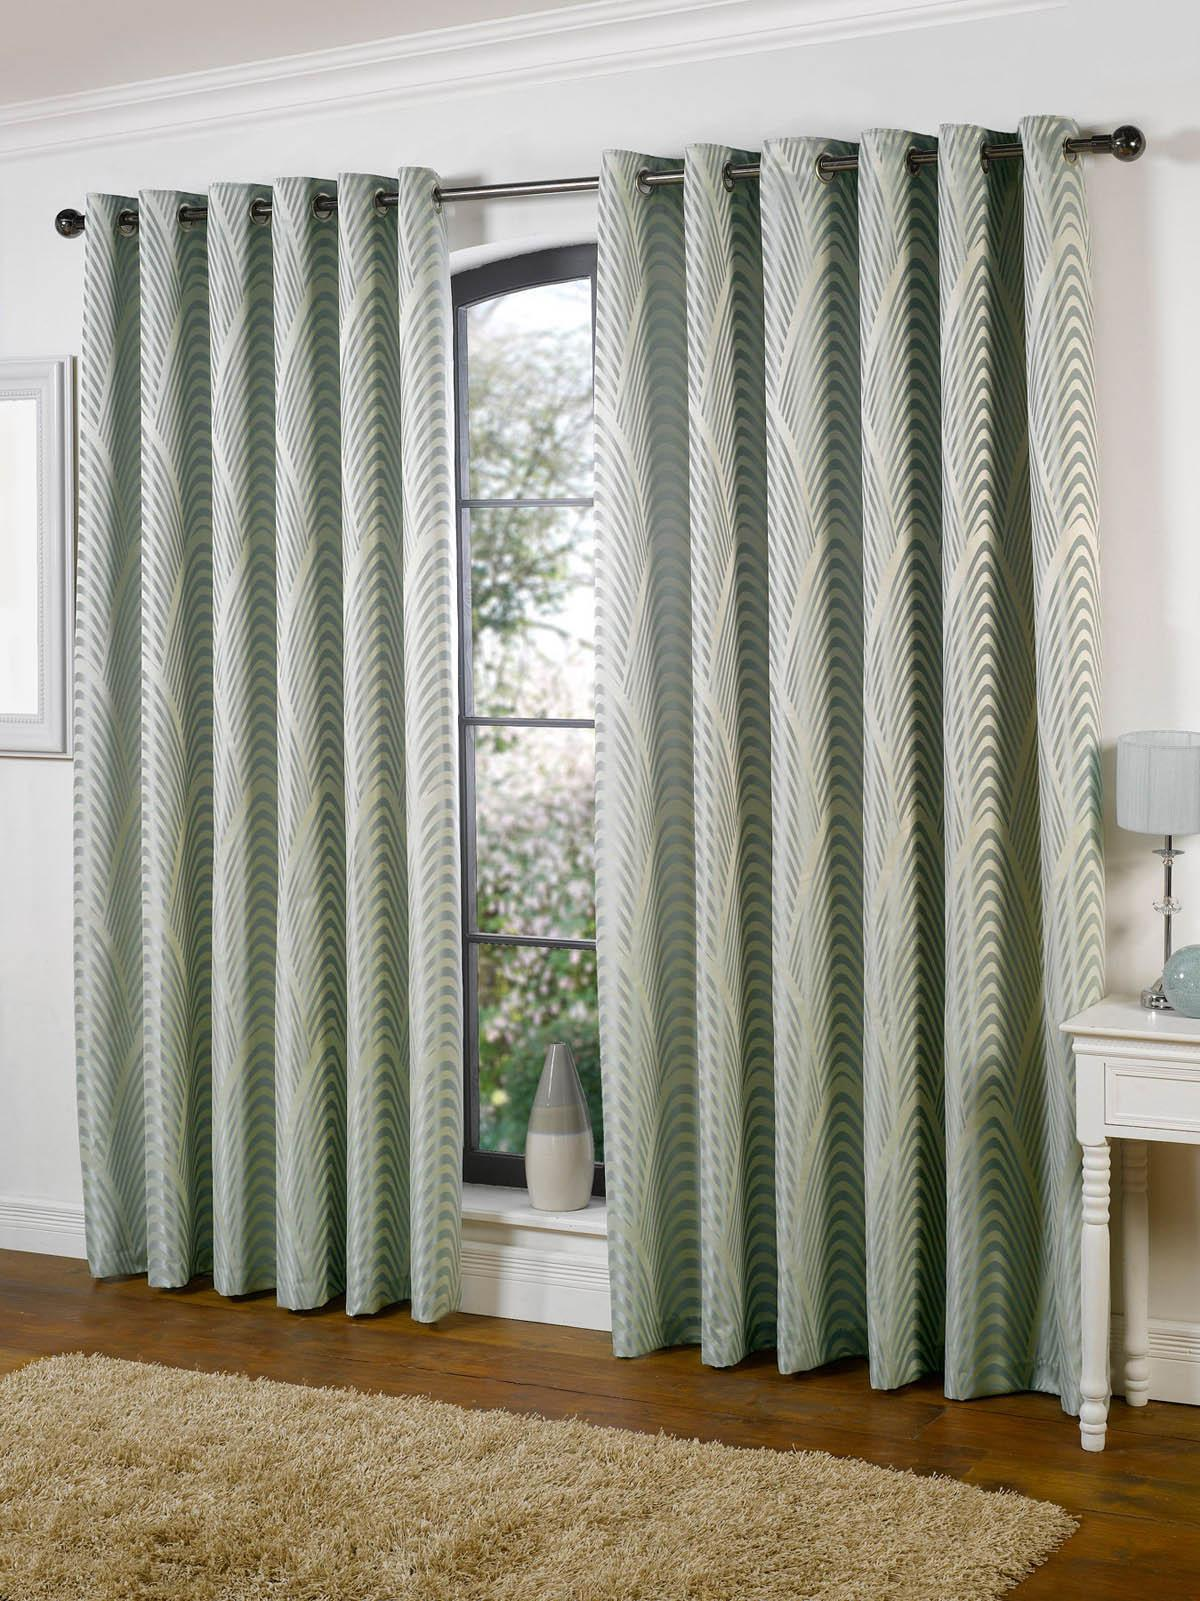 Texcraft Ready Made Curtains Dakota Lined Eyelet Ready Made Curtains Duck  ... Picture